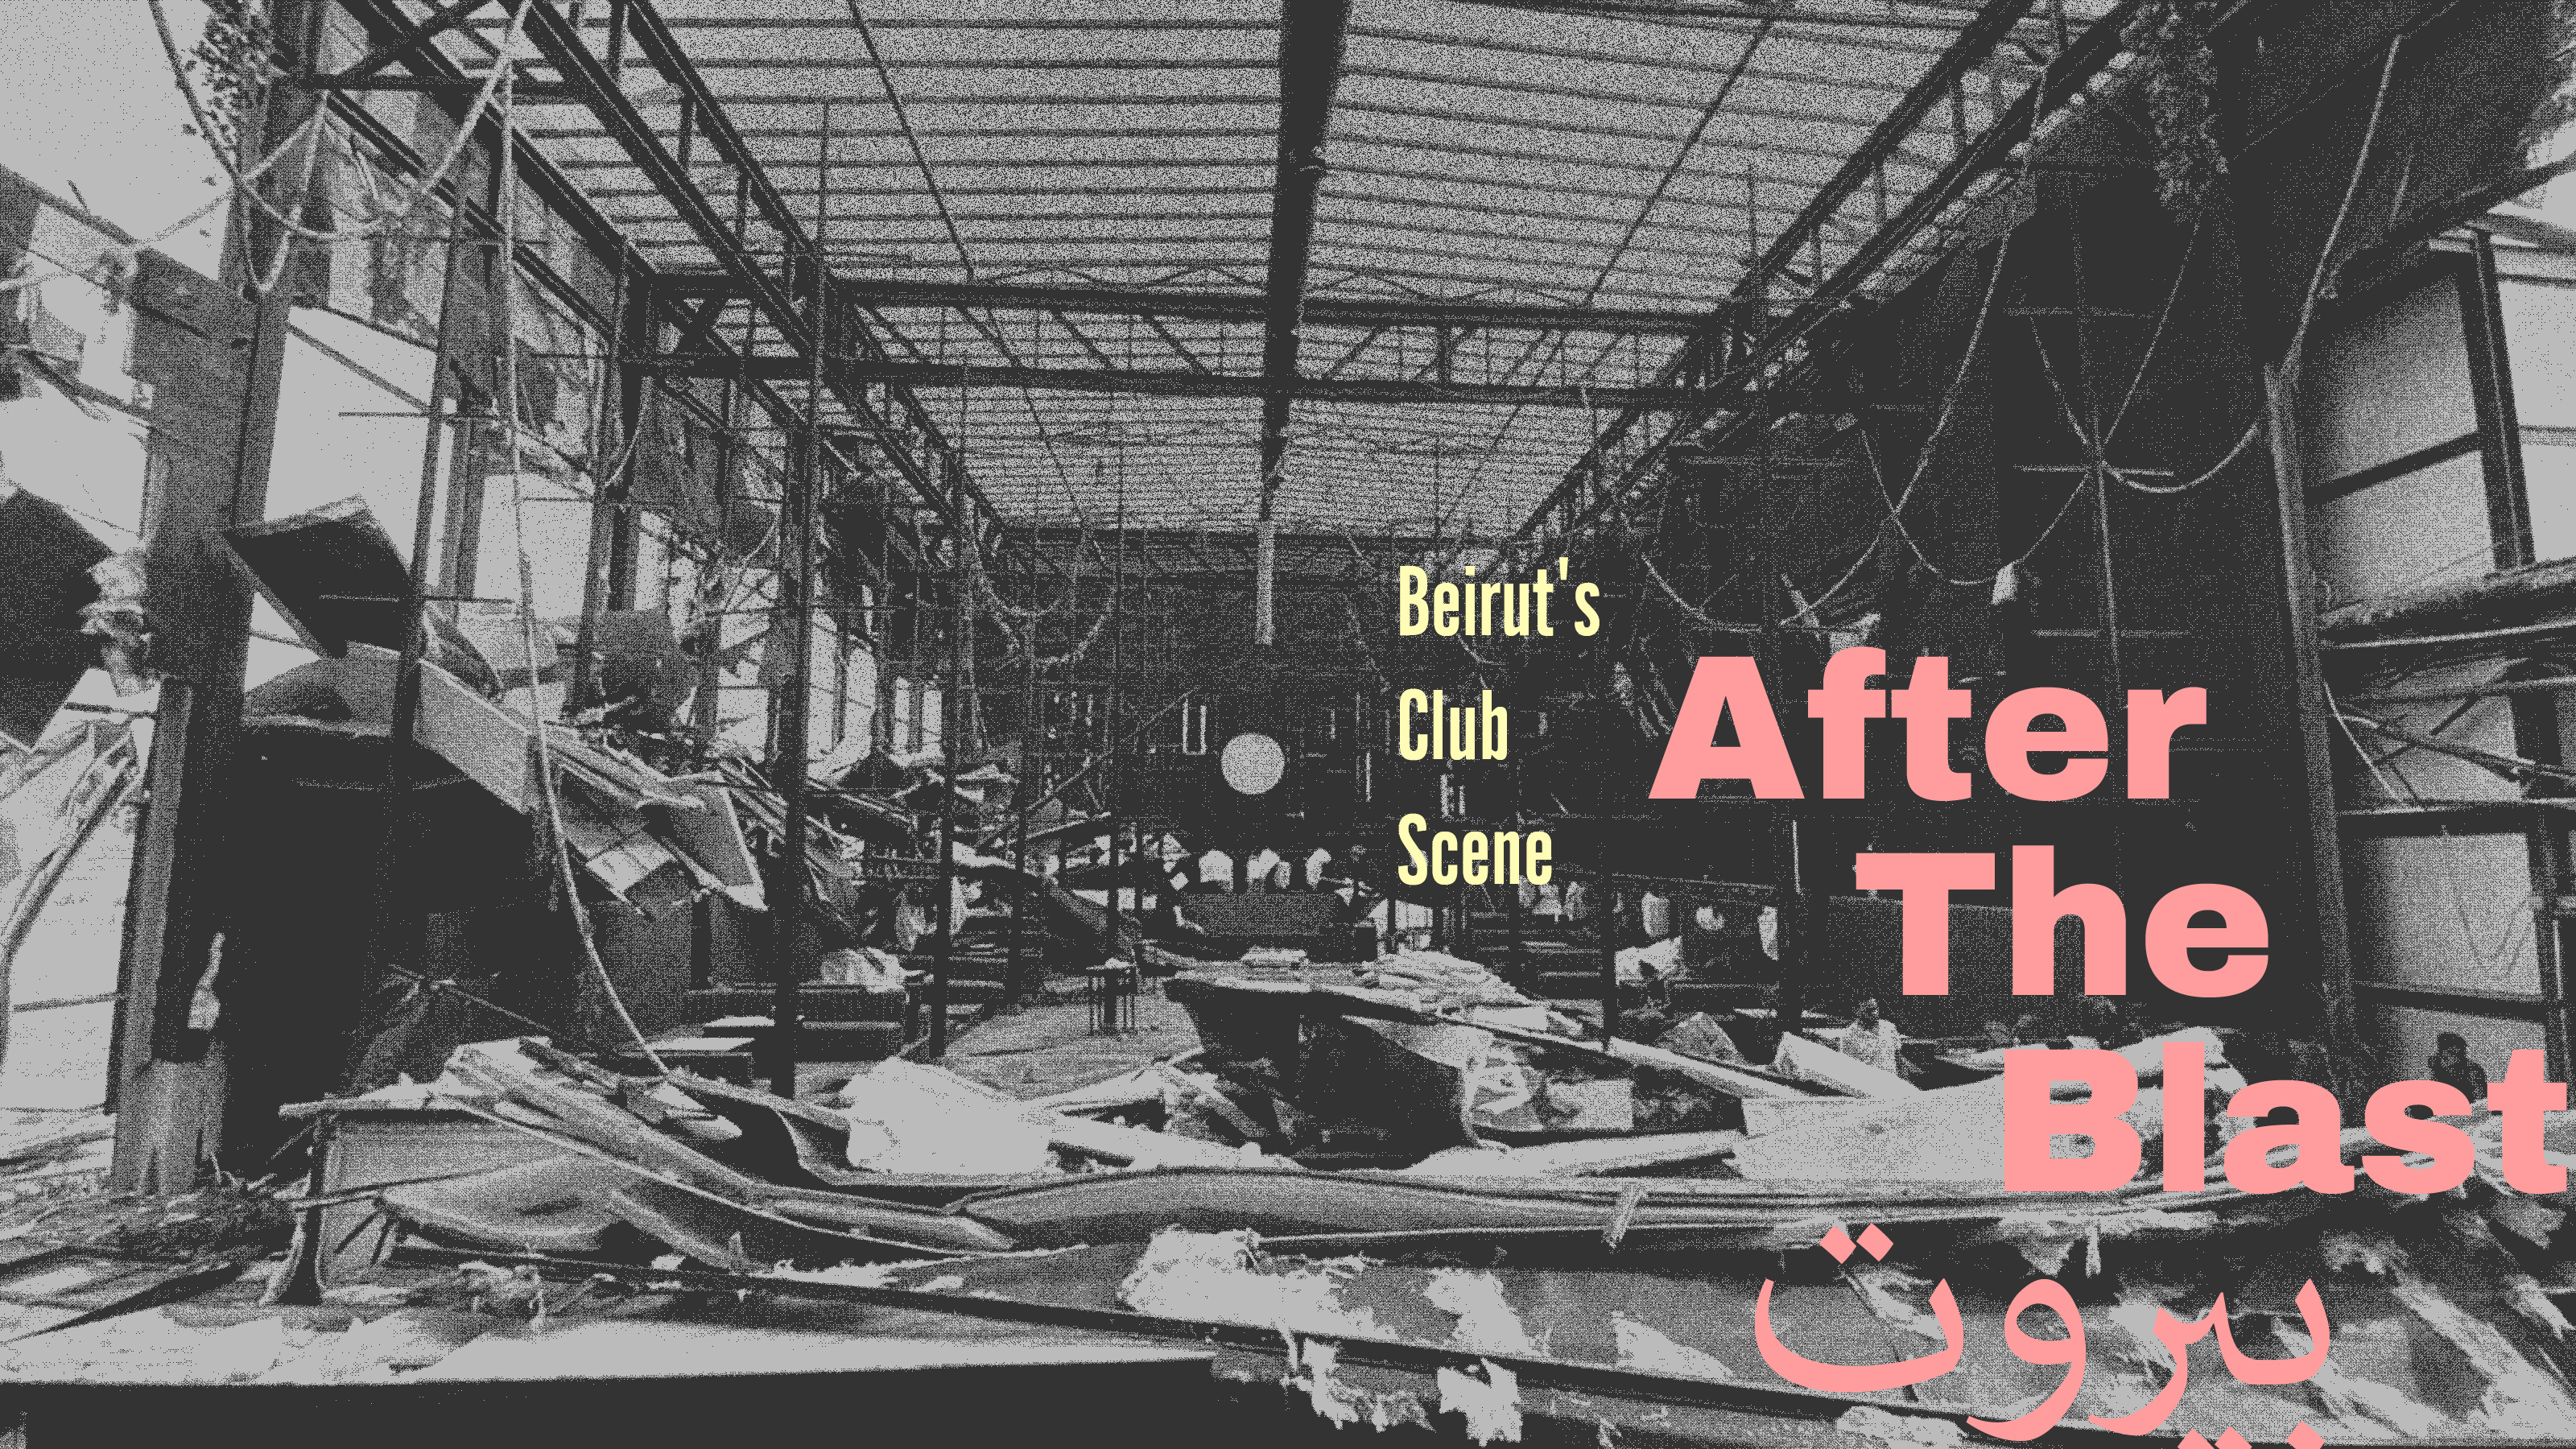 Beirut's Club Scene After The Blast